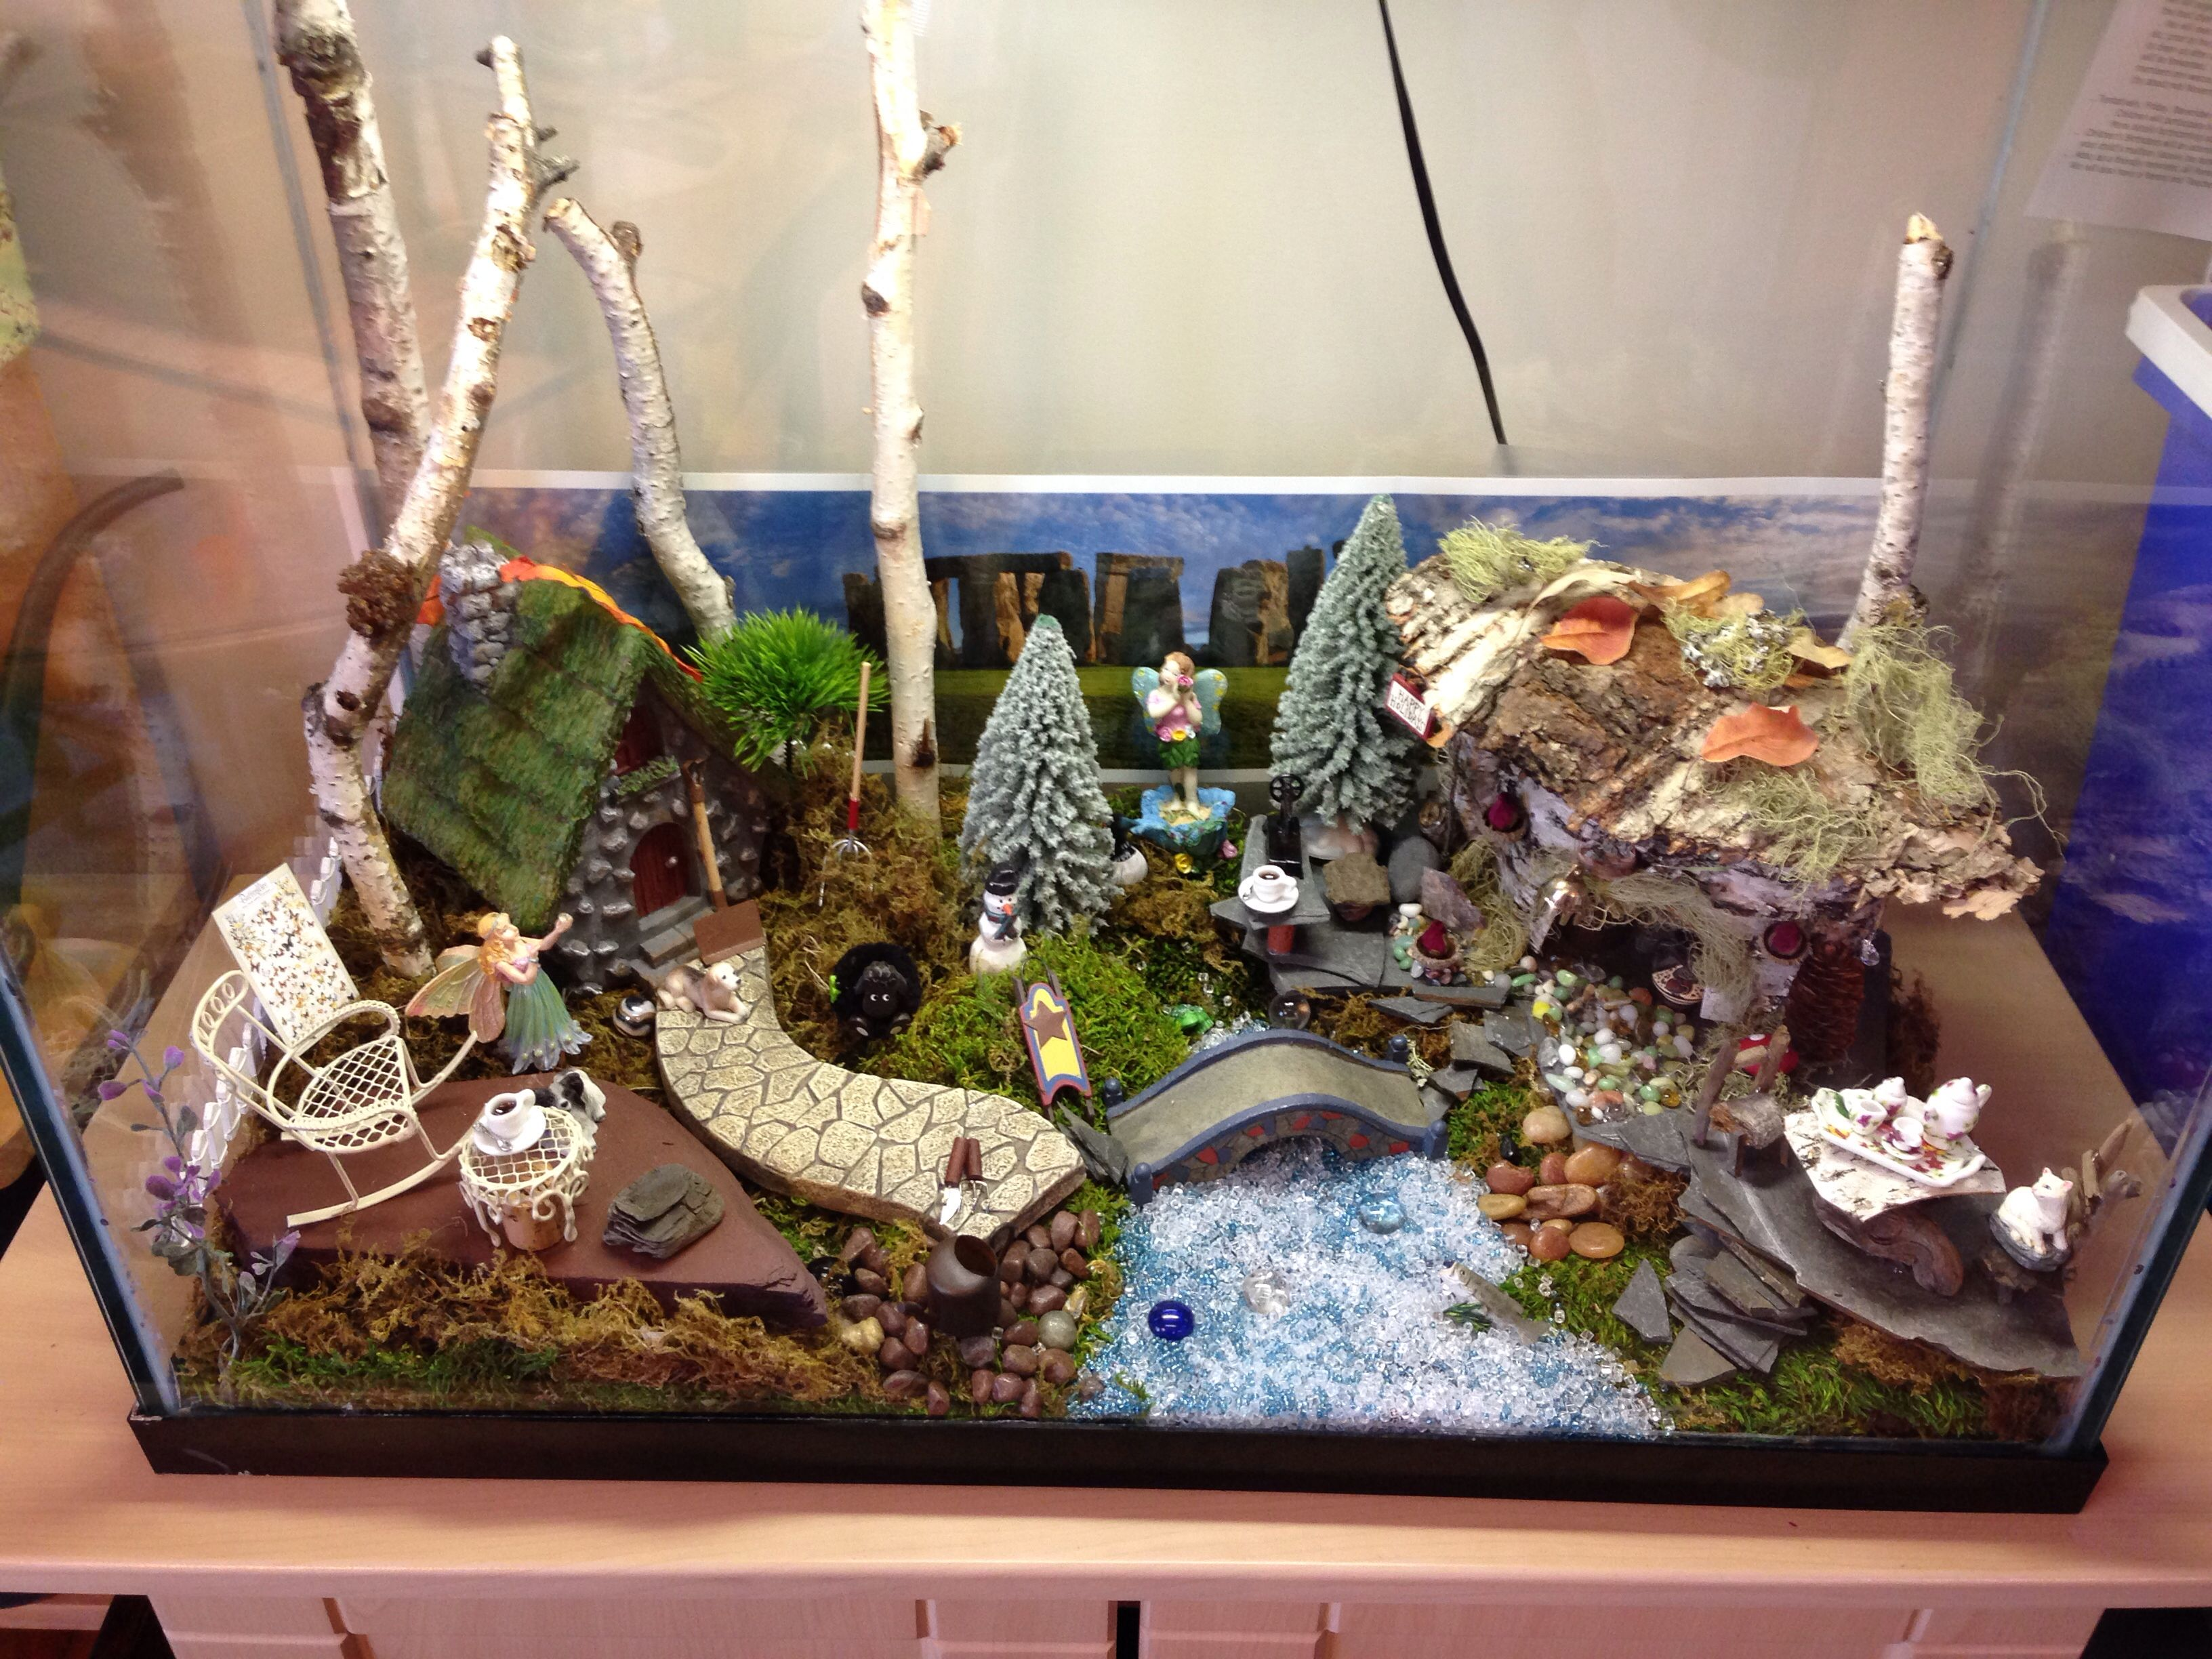 Fairy Garden In An Aquarium | Share